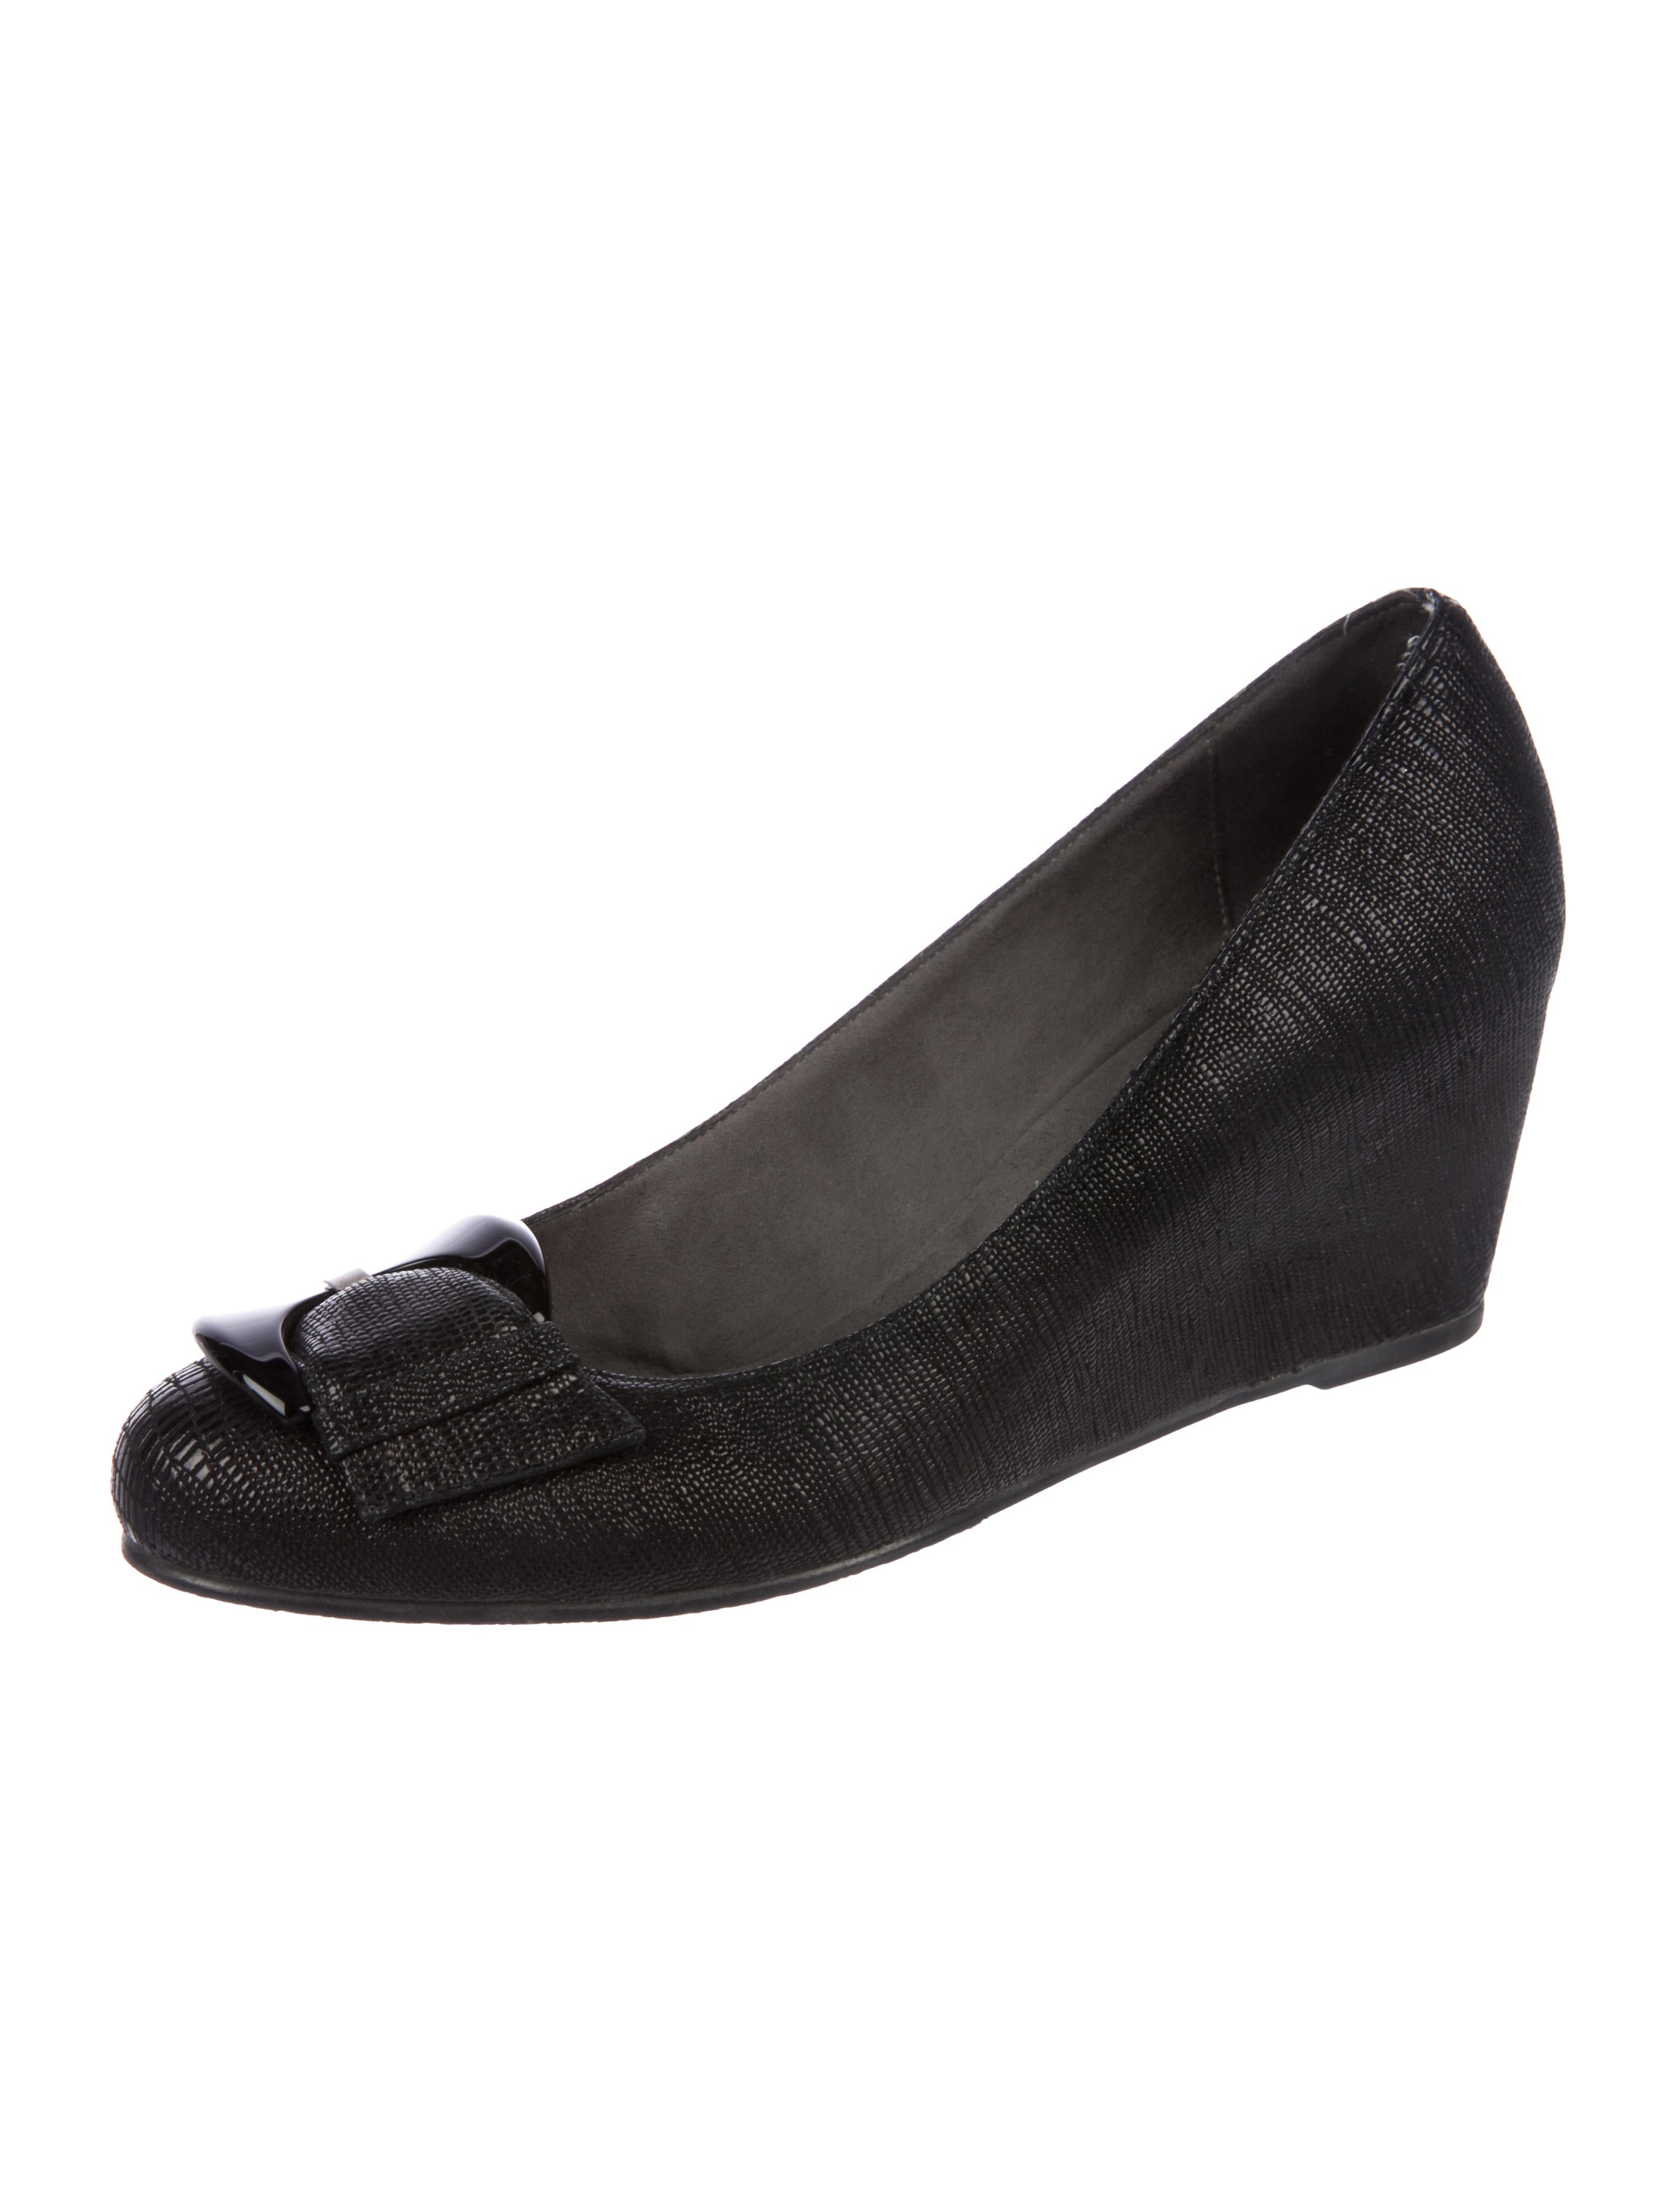 Stuart Weitzman Embossed Leather Round-Toe Wedges fashionable outlet locations sale online enjoy sale online pHtdBVure